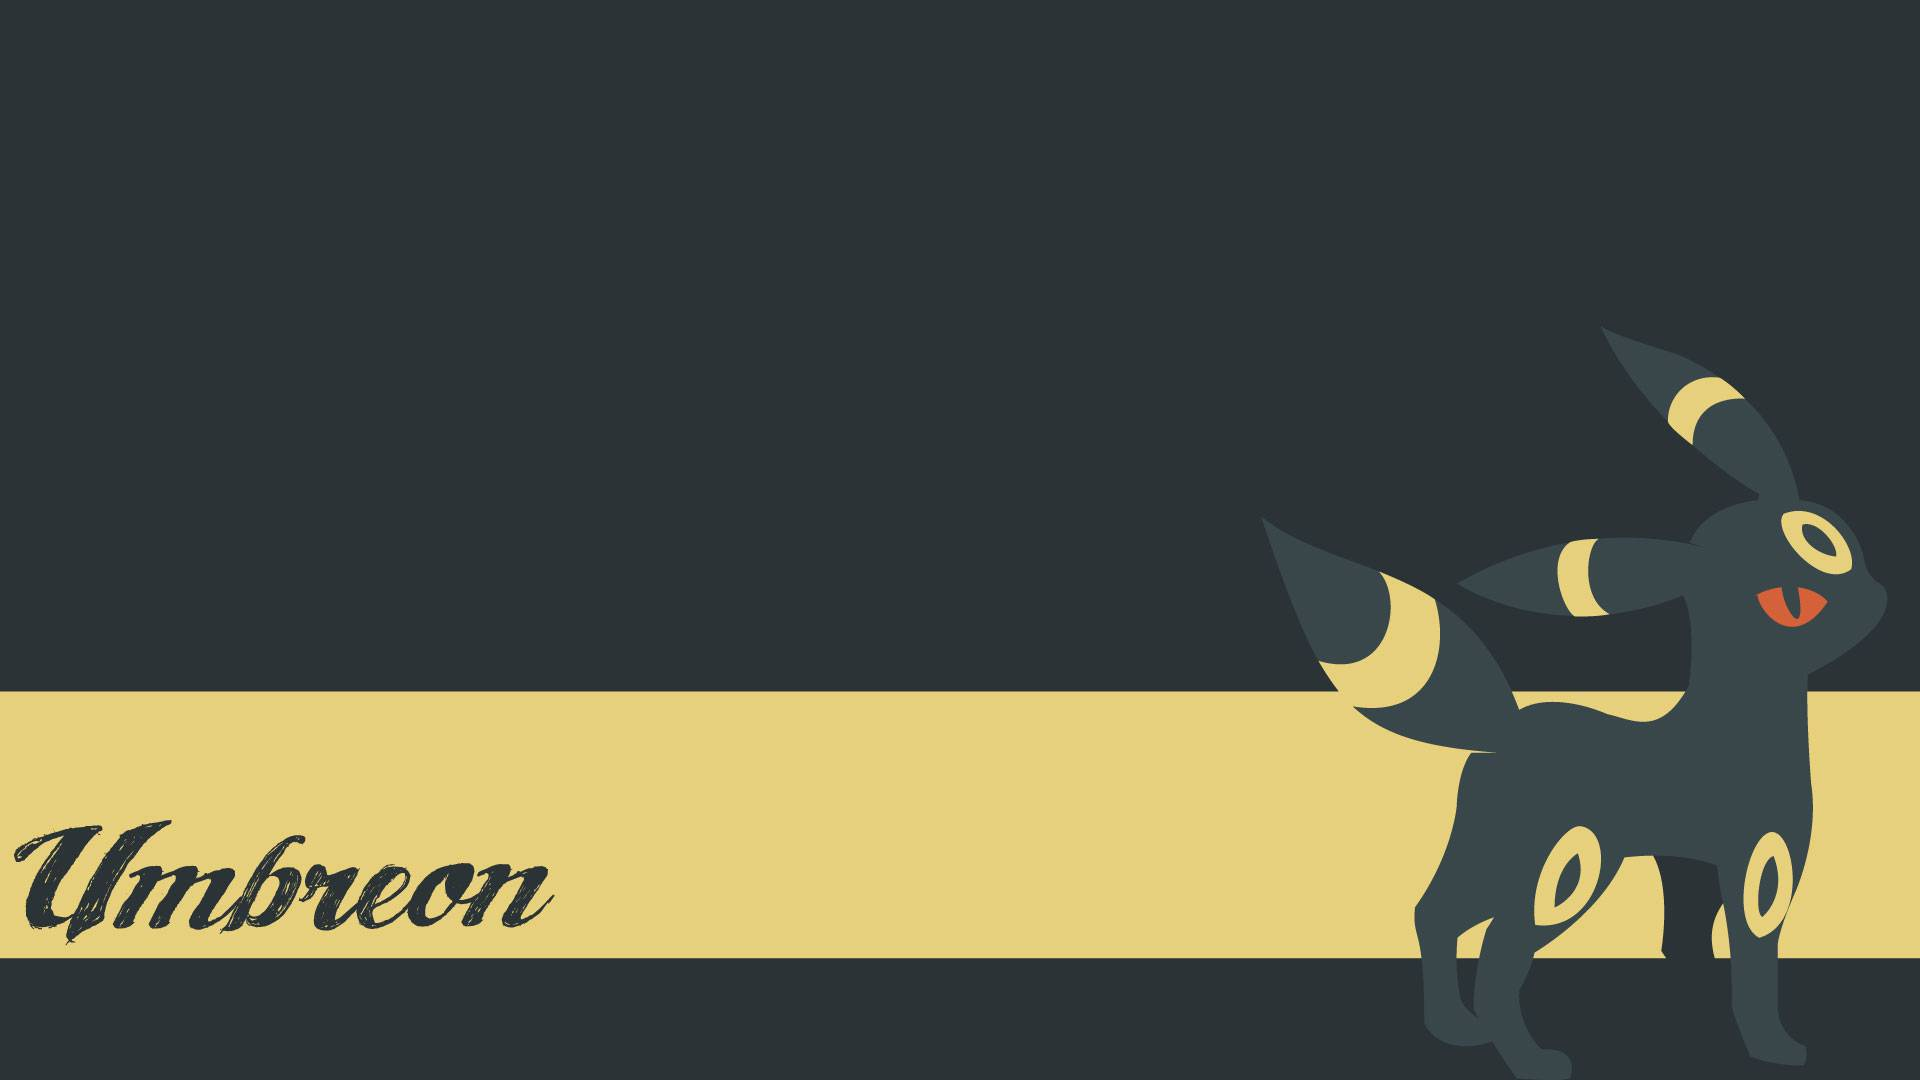 Umbreon Wallpaper Umbreon 1920x1080